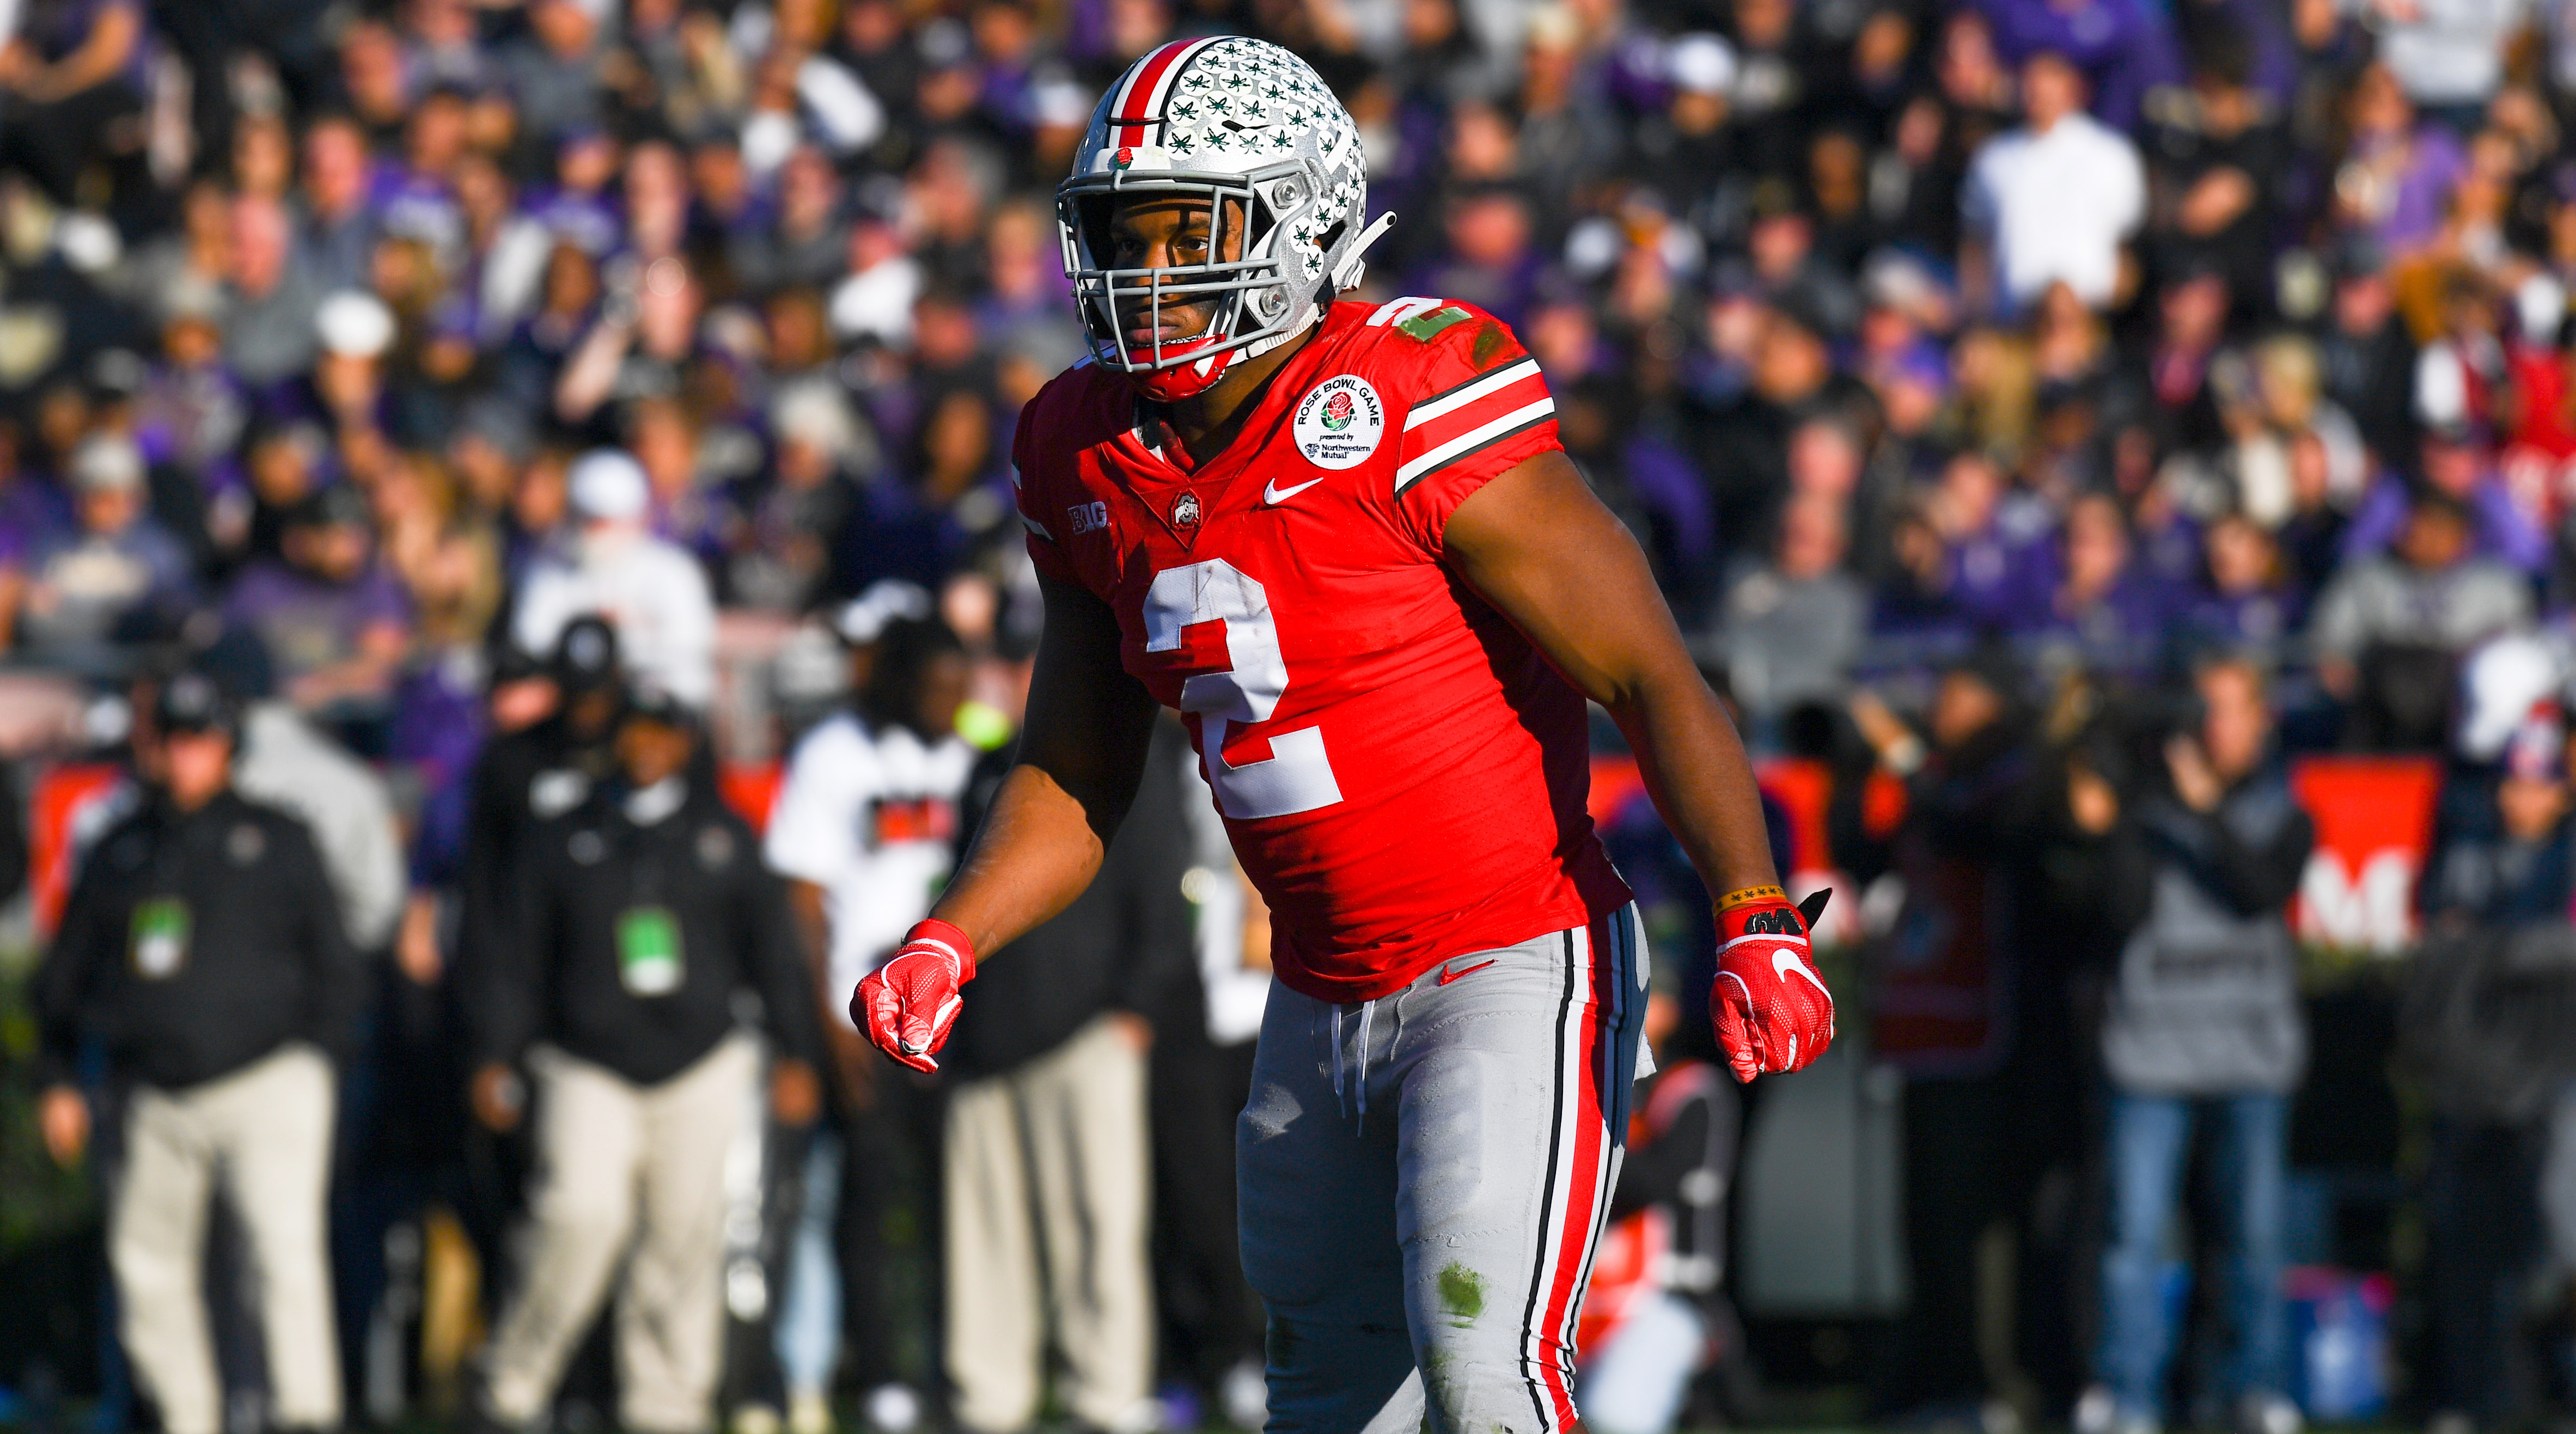 Ohio State's Chase Young